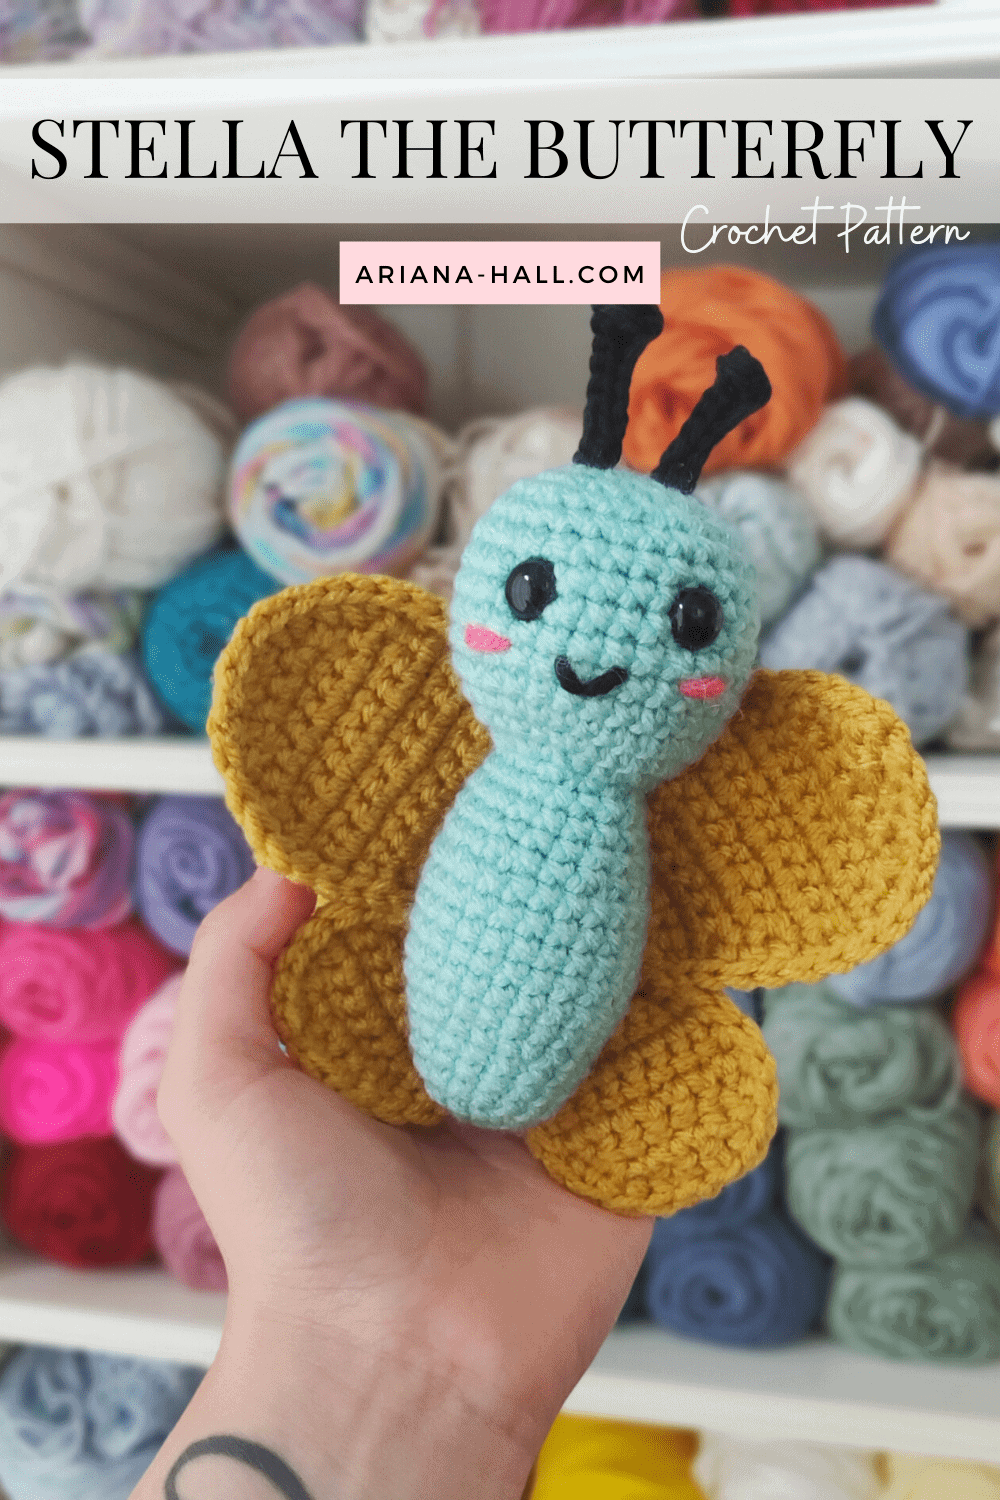 Blue and gold small crochety butterfly.